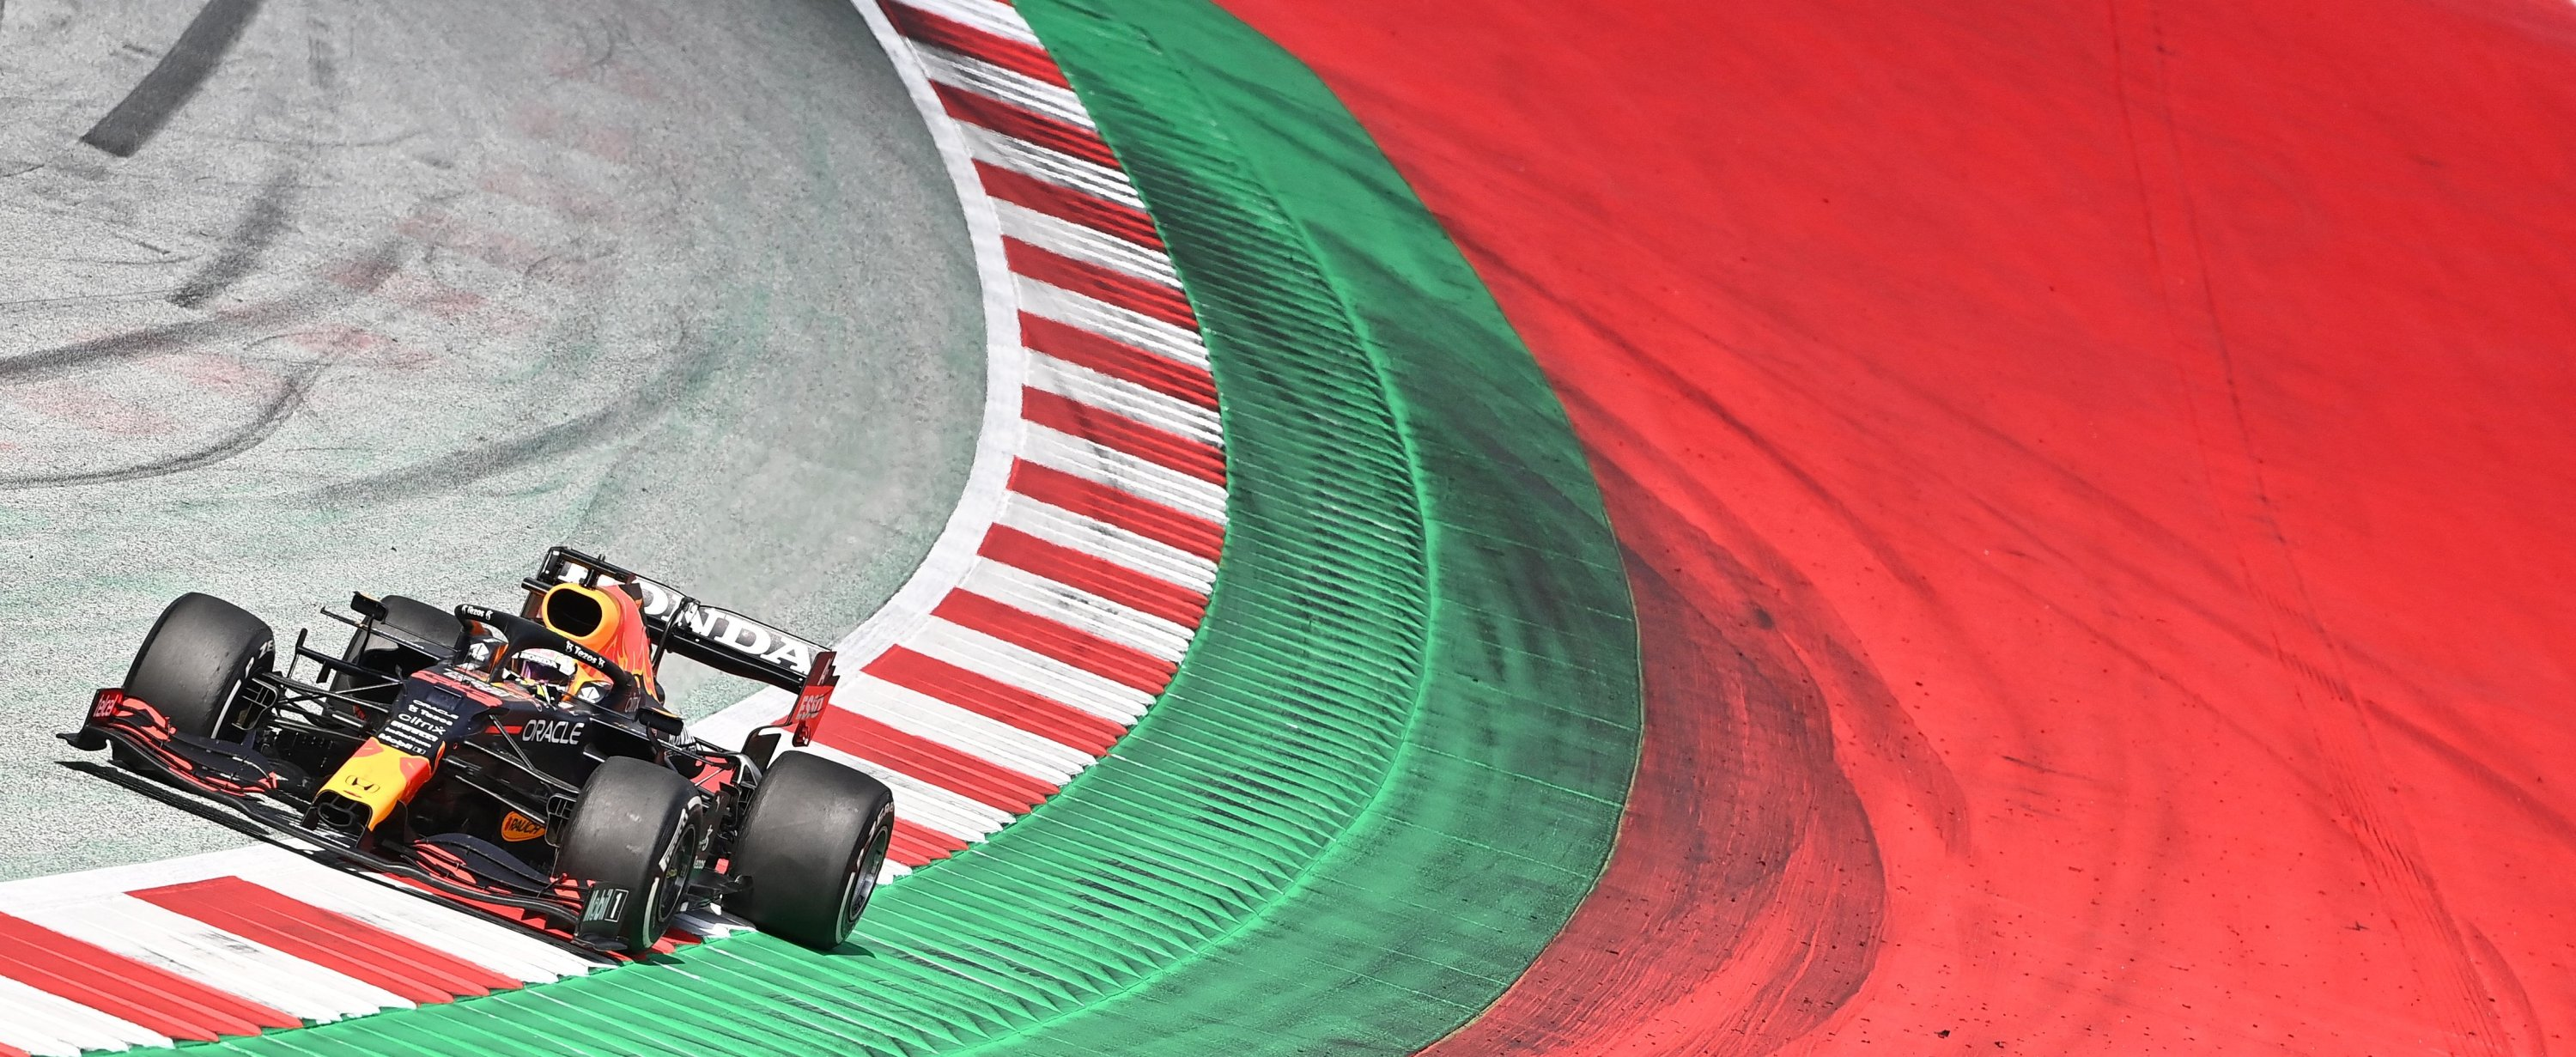 Red Bull's Dutch driver Max Verstappen competes during the Formula One Styrian Grand Prix at the Red Bull Ring race track, Spielberg, Austria, June 27, 2021. (AFP Photo)